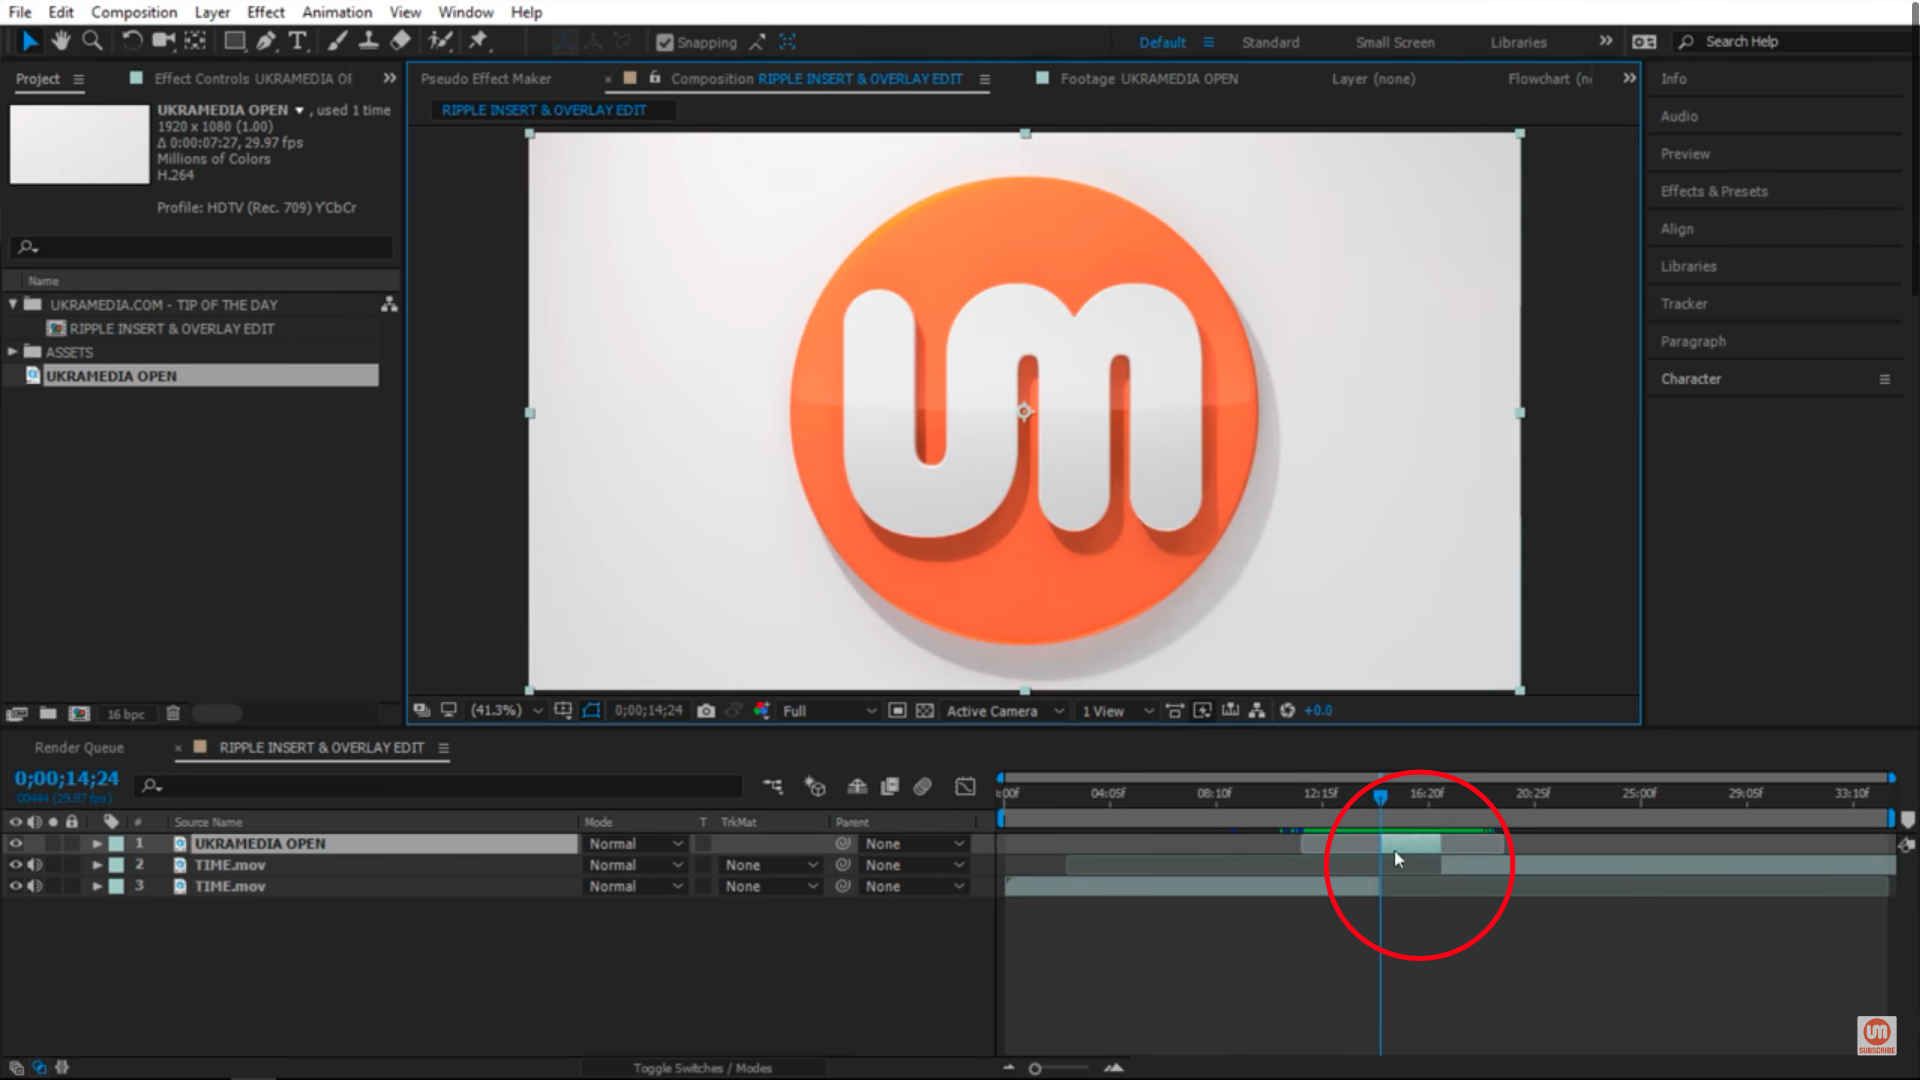 Ripple Insert Edit in Adobe After Effects